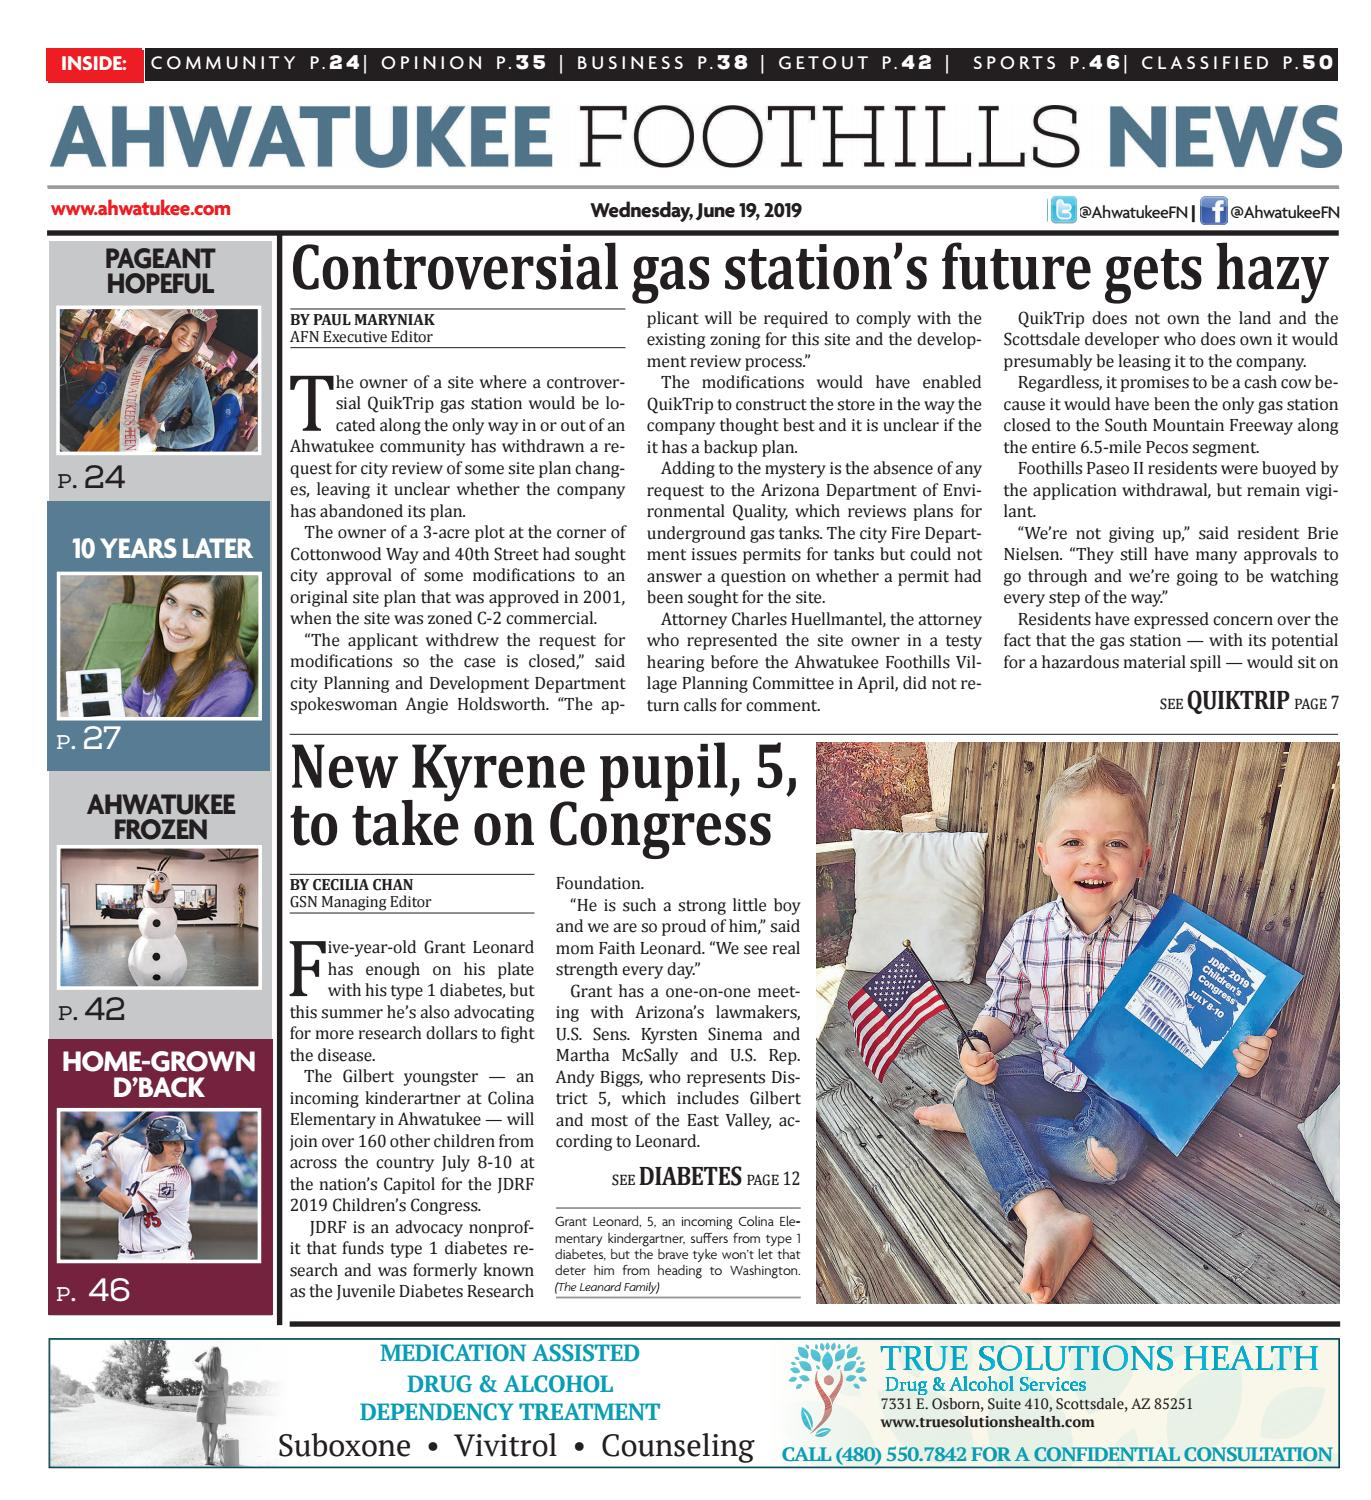 Ahwatukee Foothills News - June 19, 2019 by Times Media